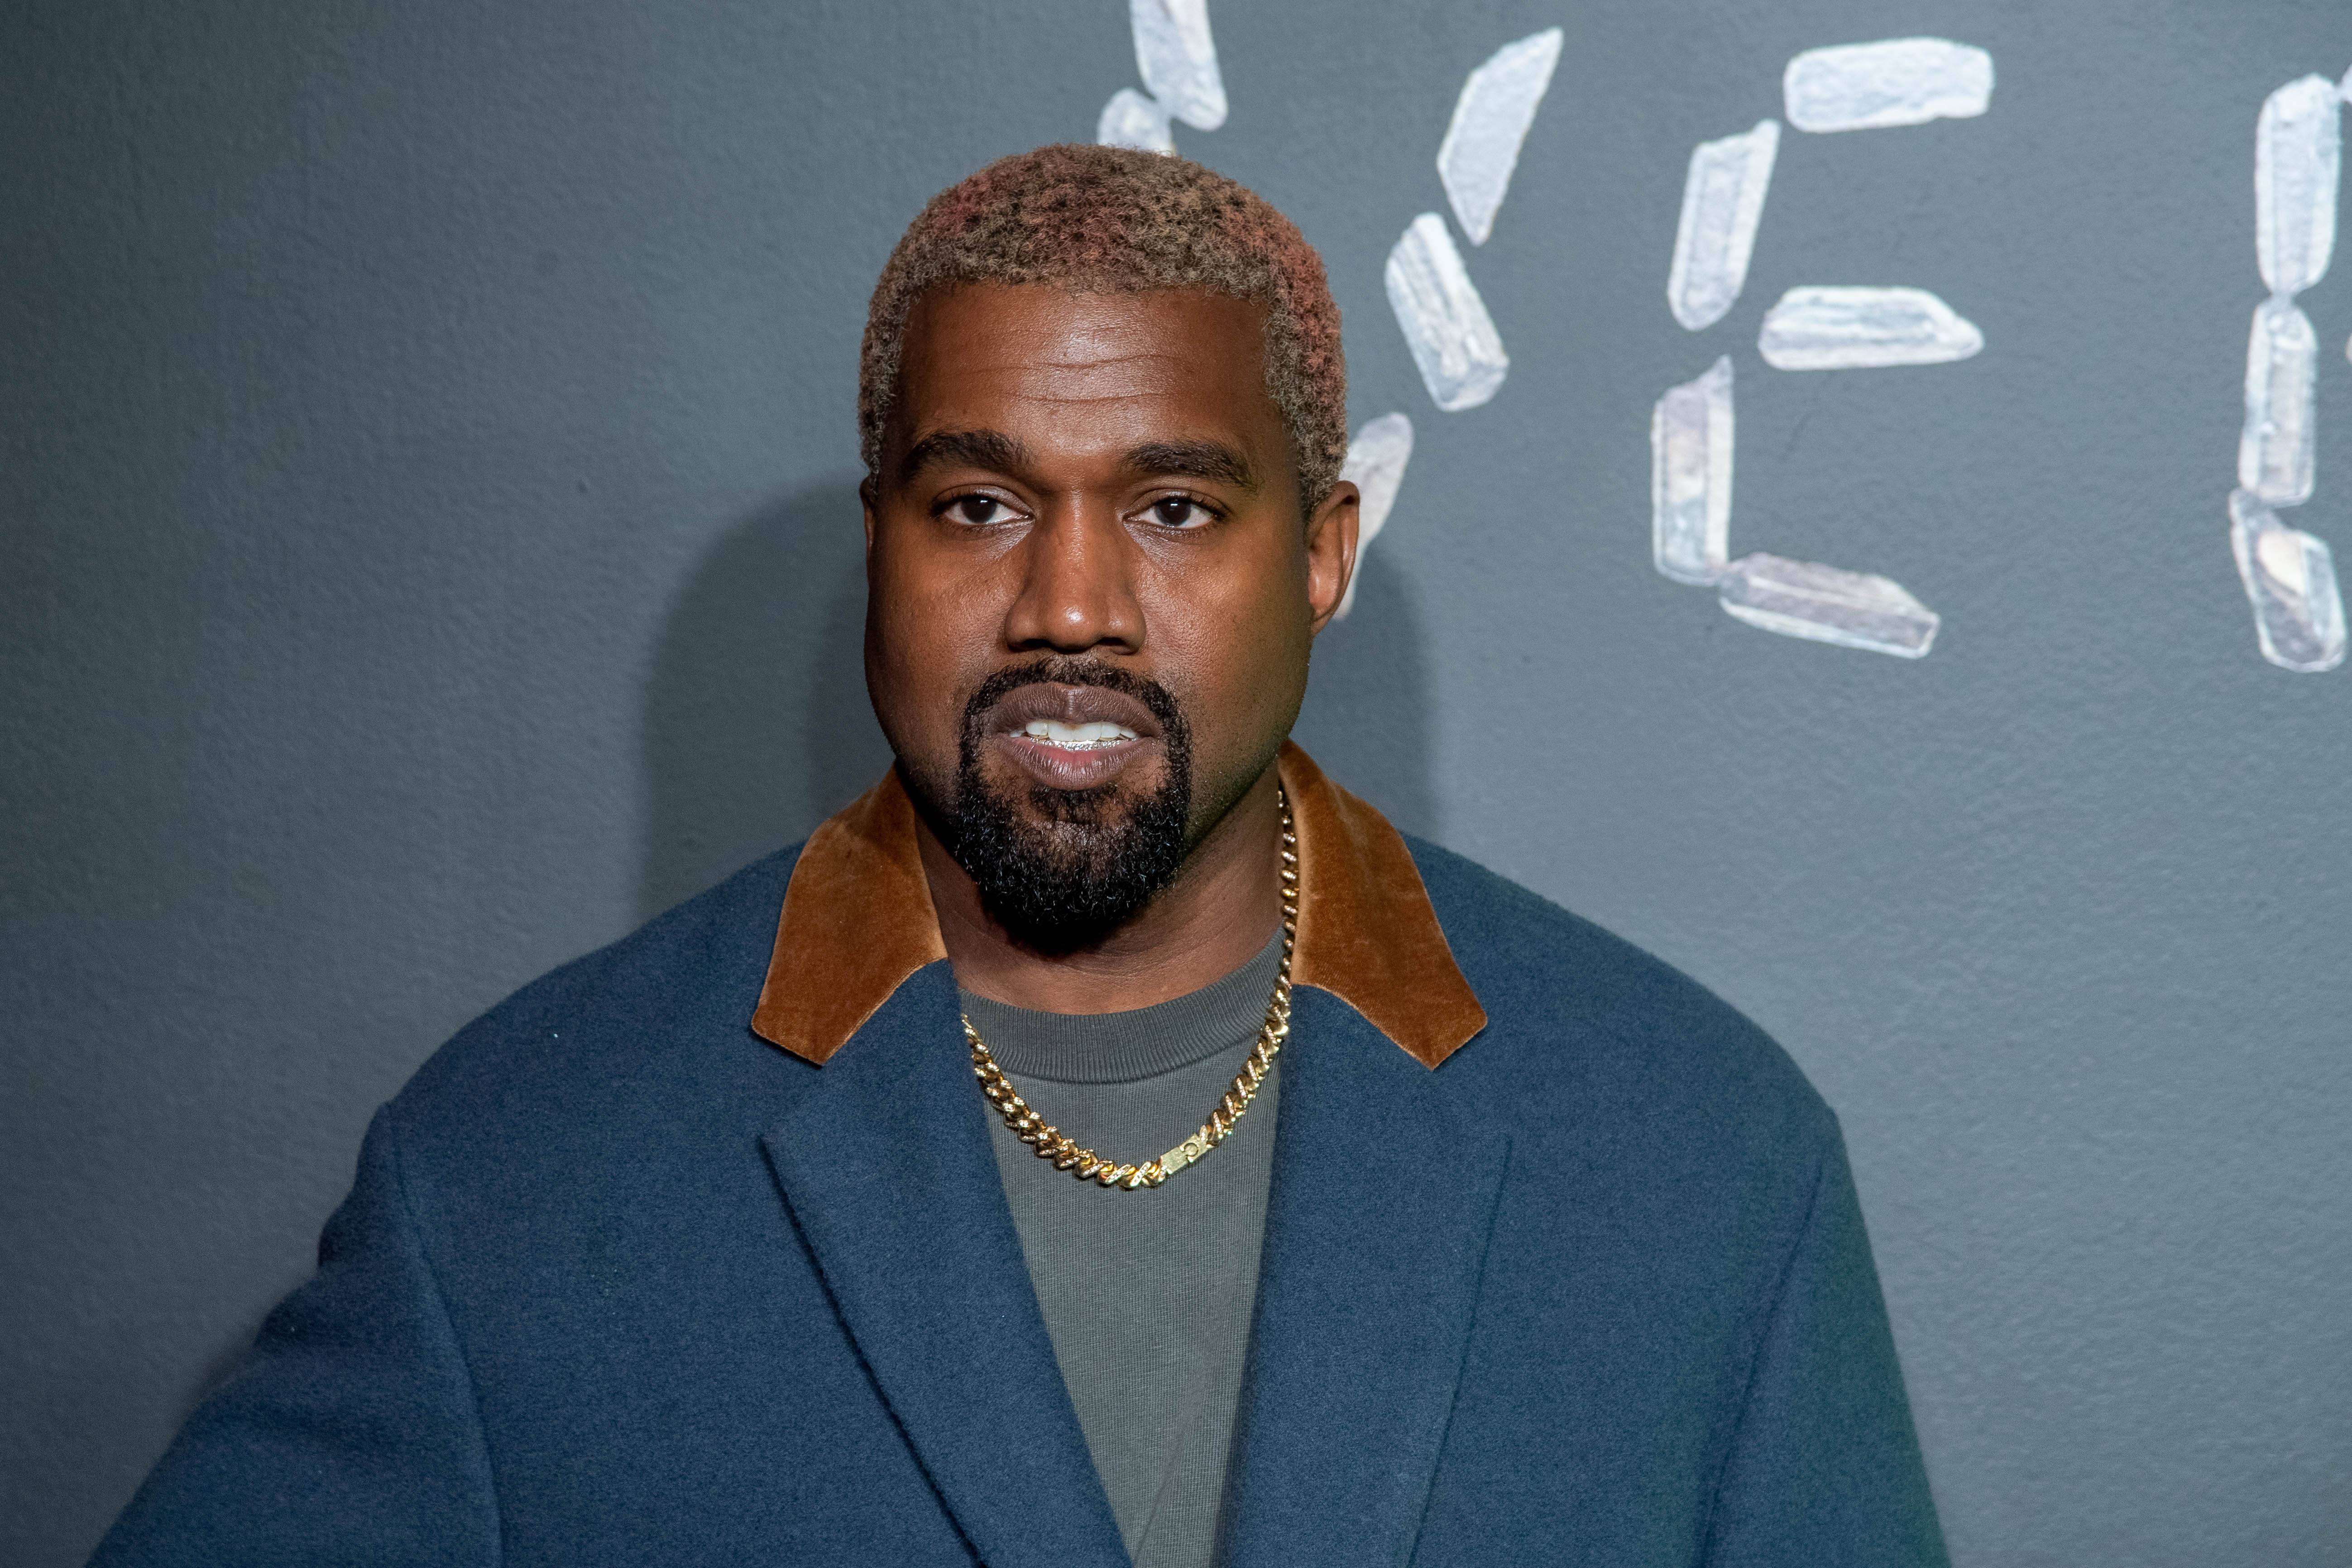 Kanye West at the Versace fall 2019 fashion show on Dec. 02, 2018 in New York City | Photo: Getty Images